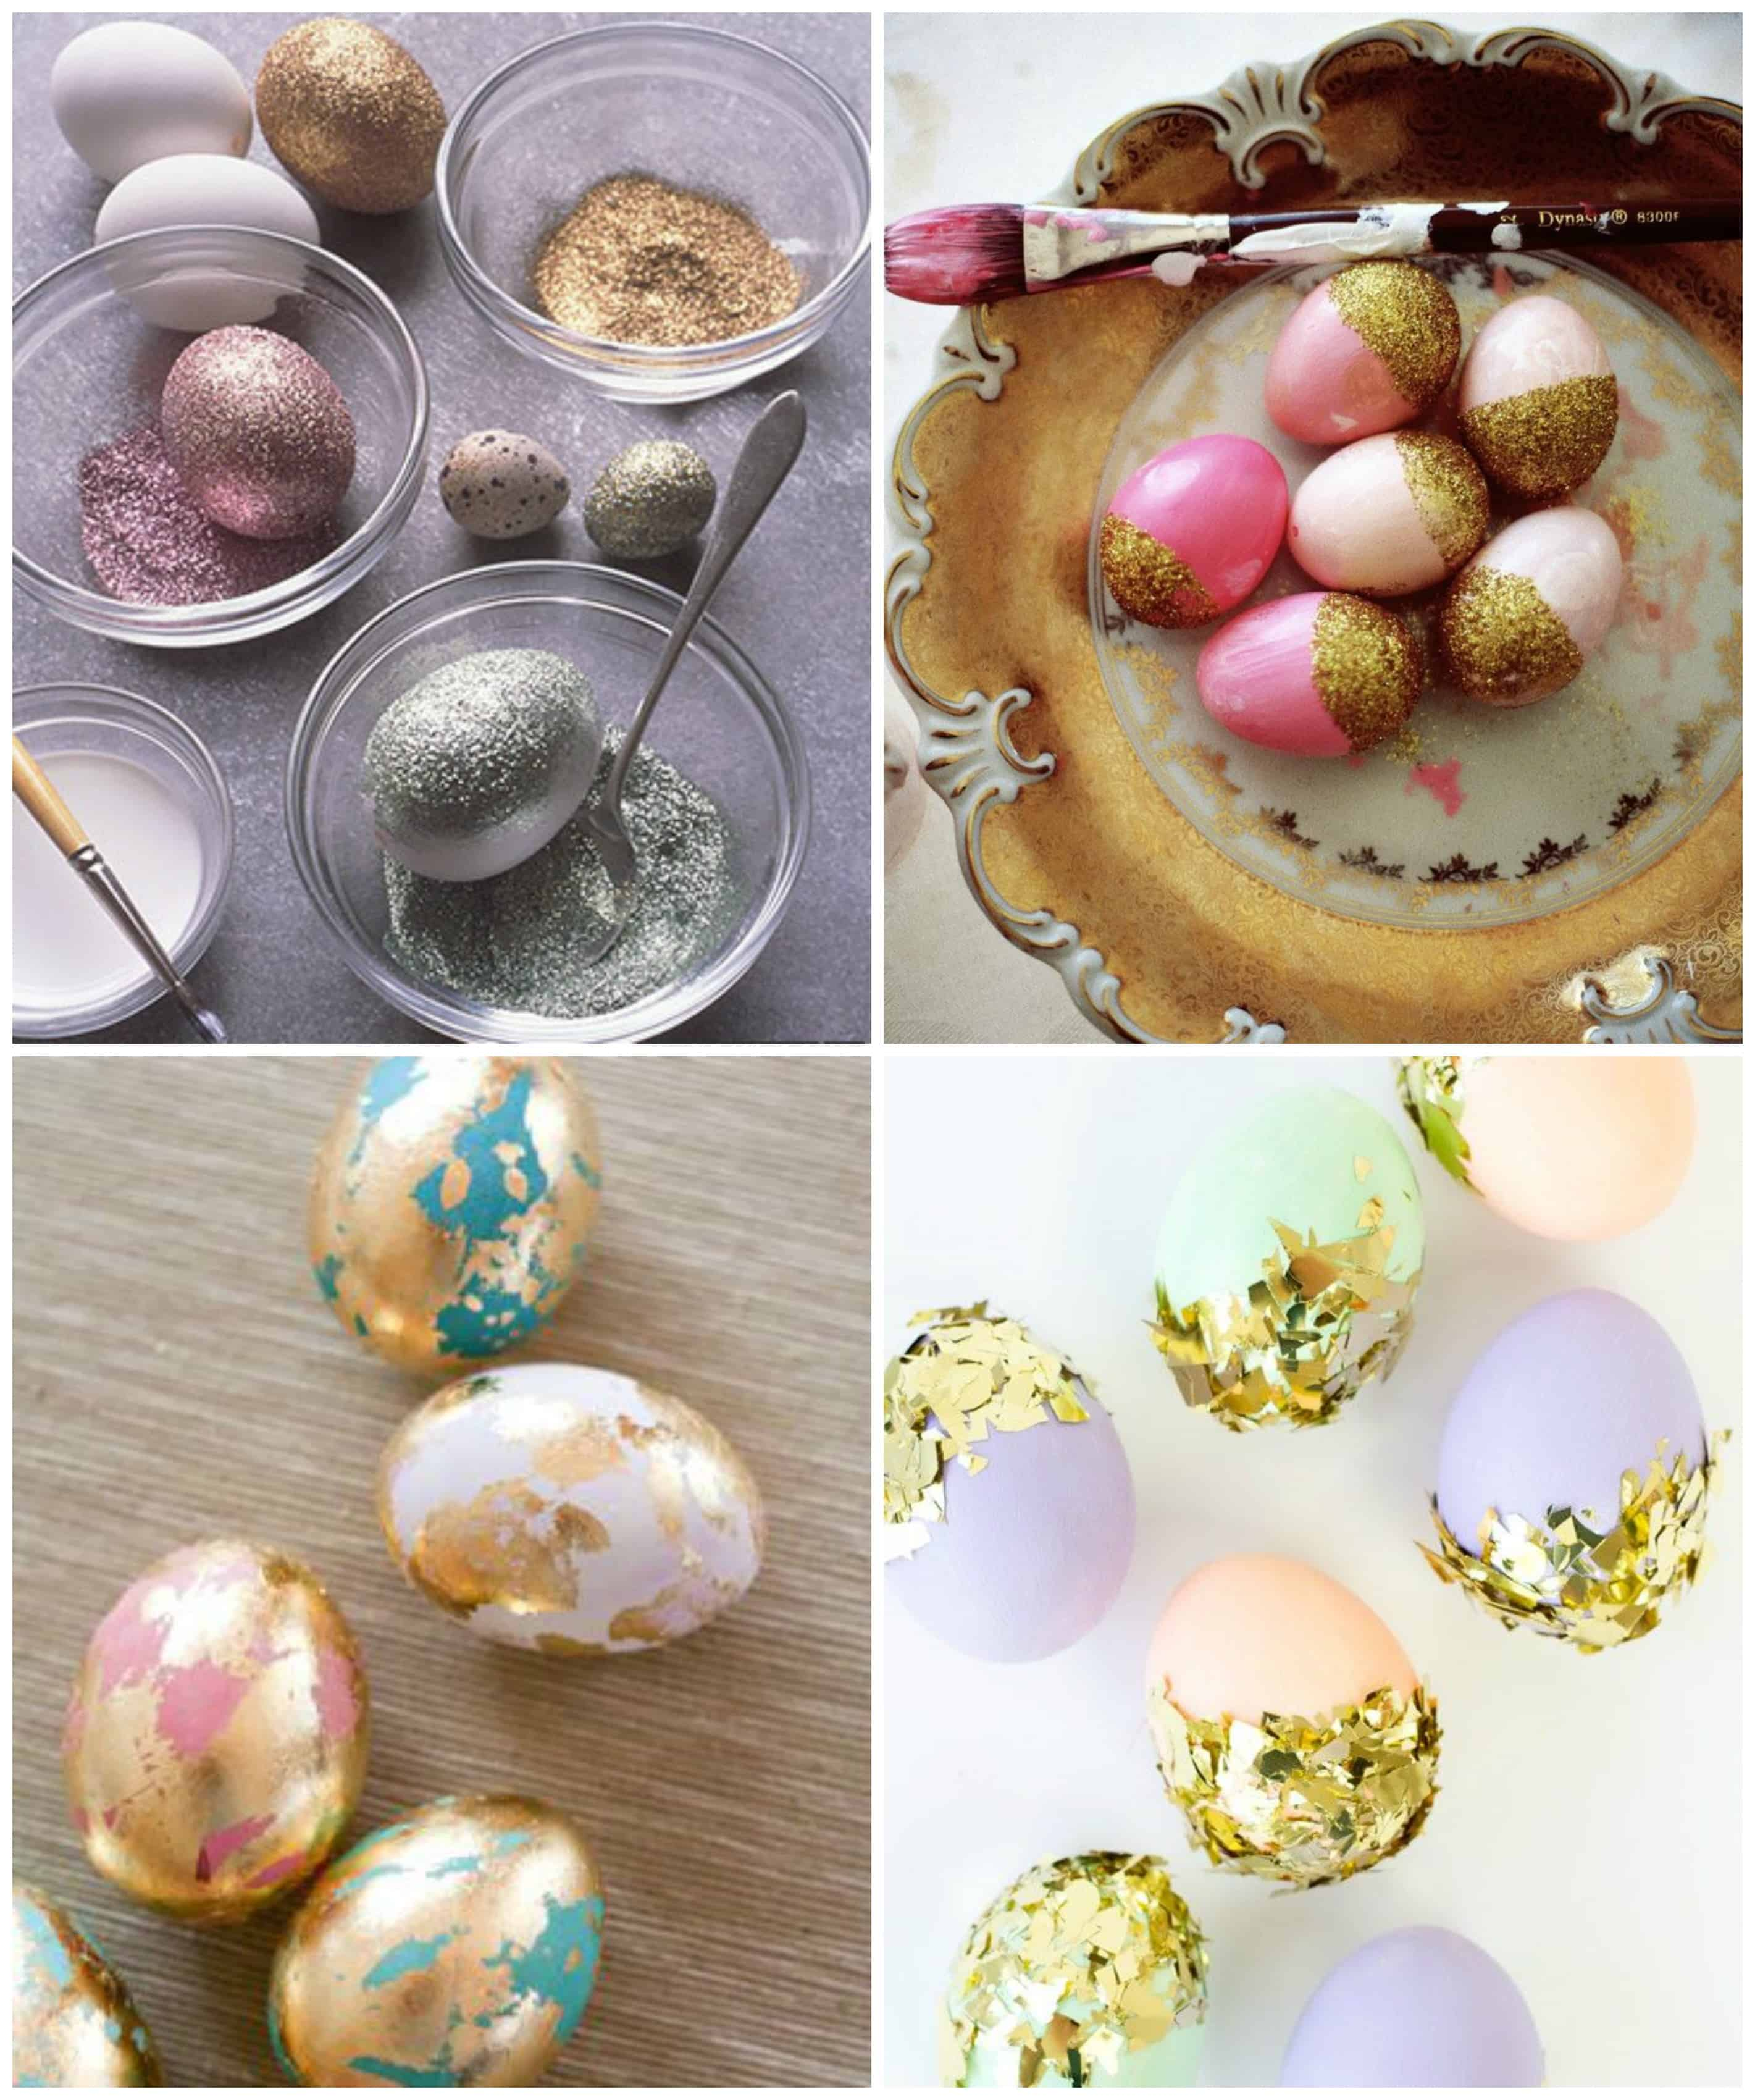 GLITTER DIY 10 MODI PER DECORARE LE UOVA DI PASQUA TUTTOFERRAMENTA.IT